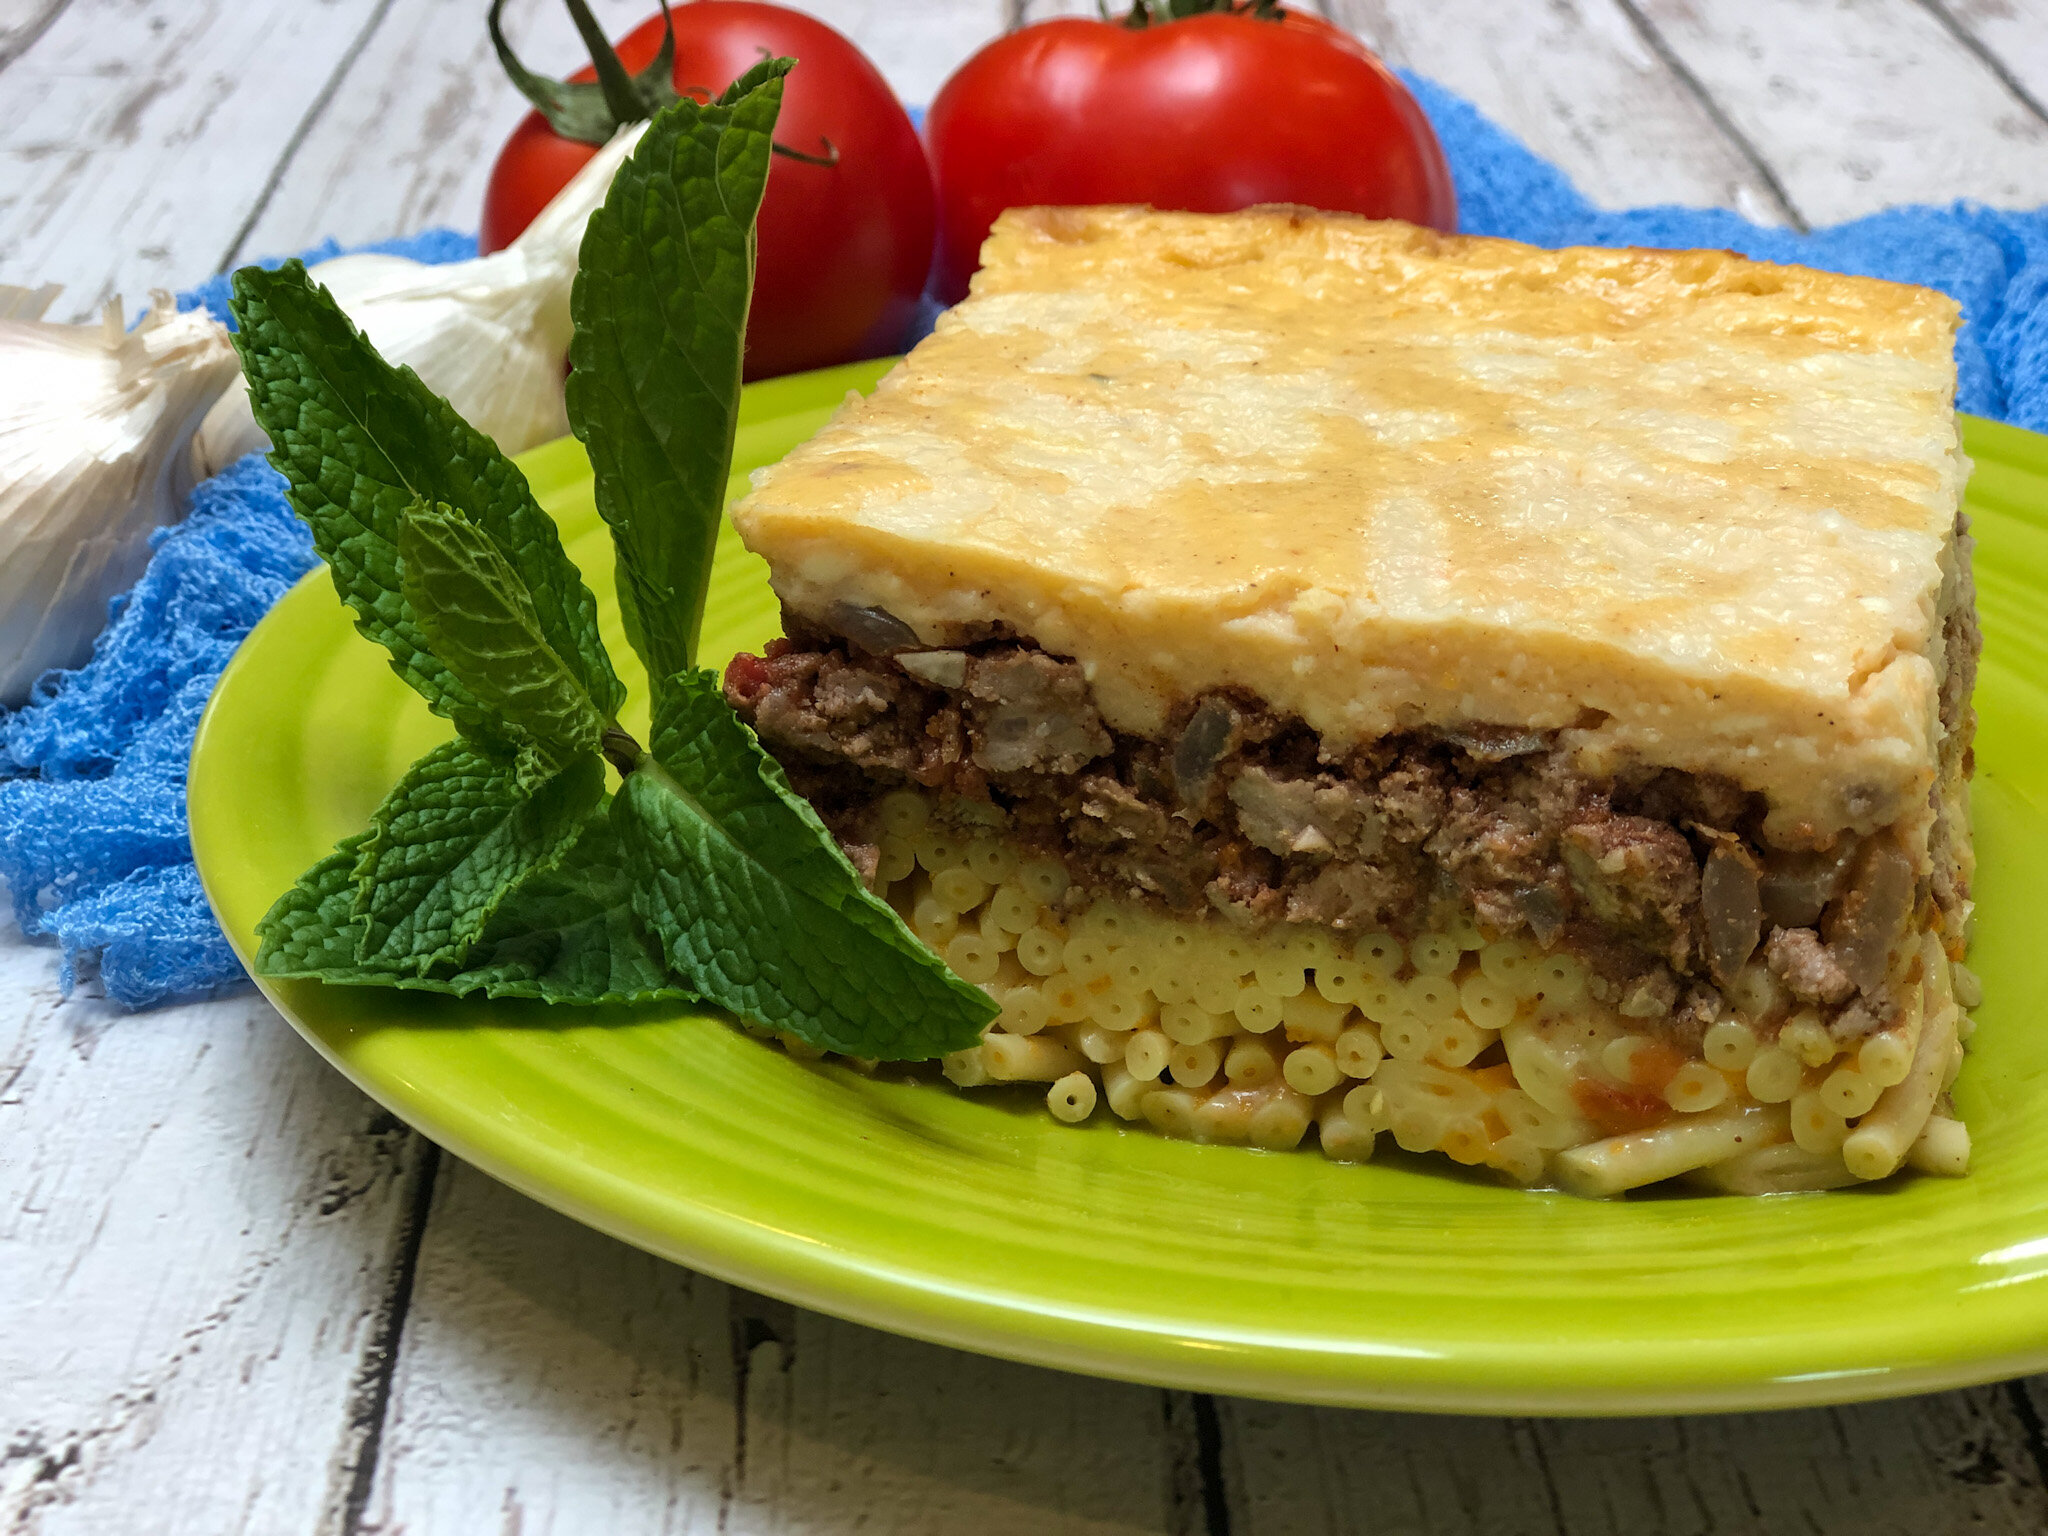 The traditional Greek dish, Pastitsio, otherwise known as, Greek lasagna